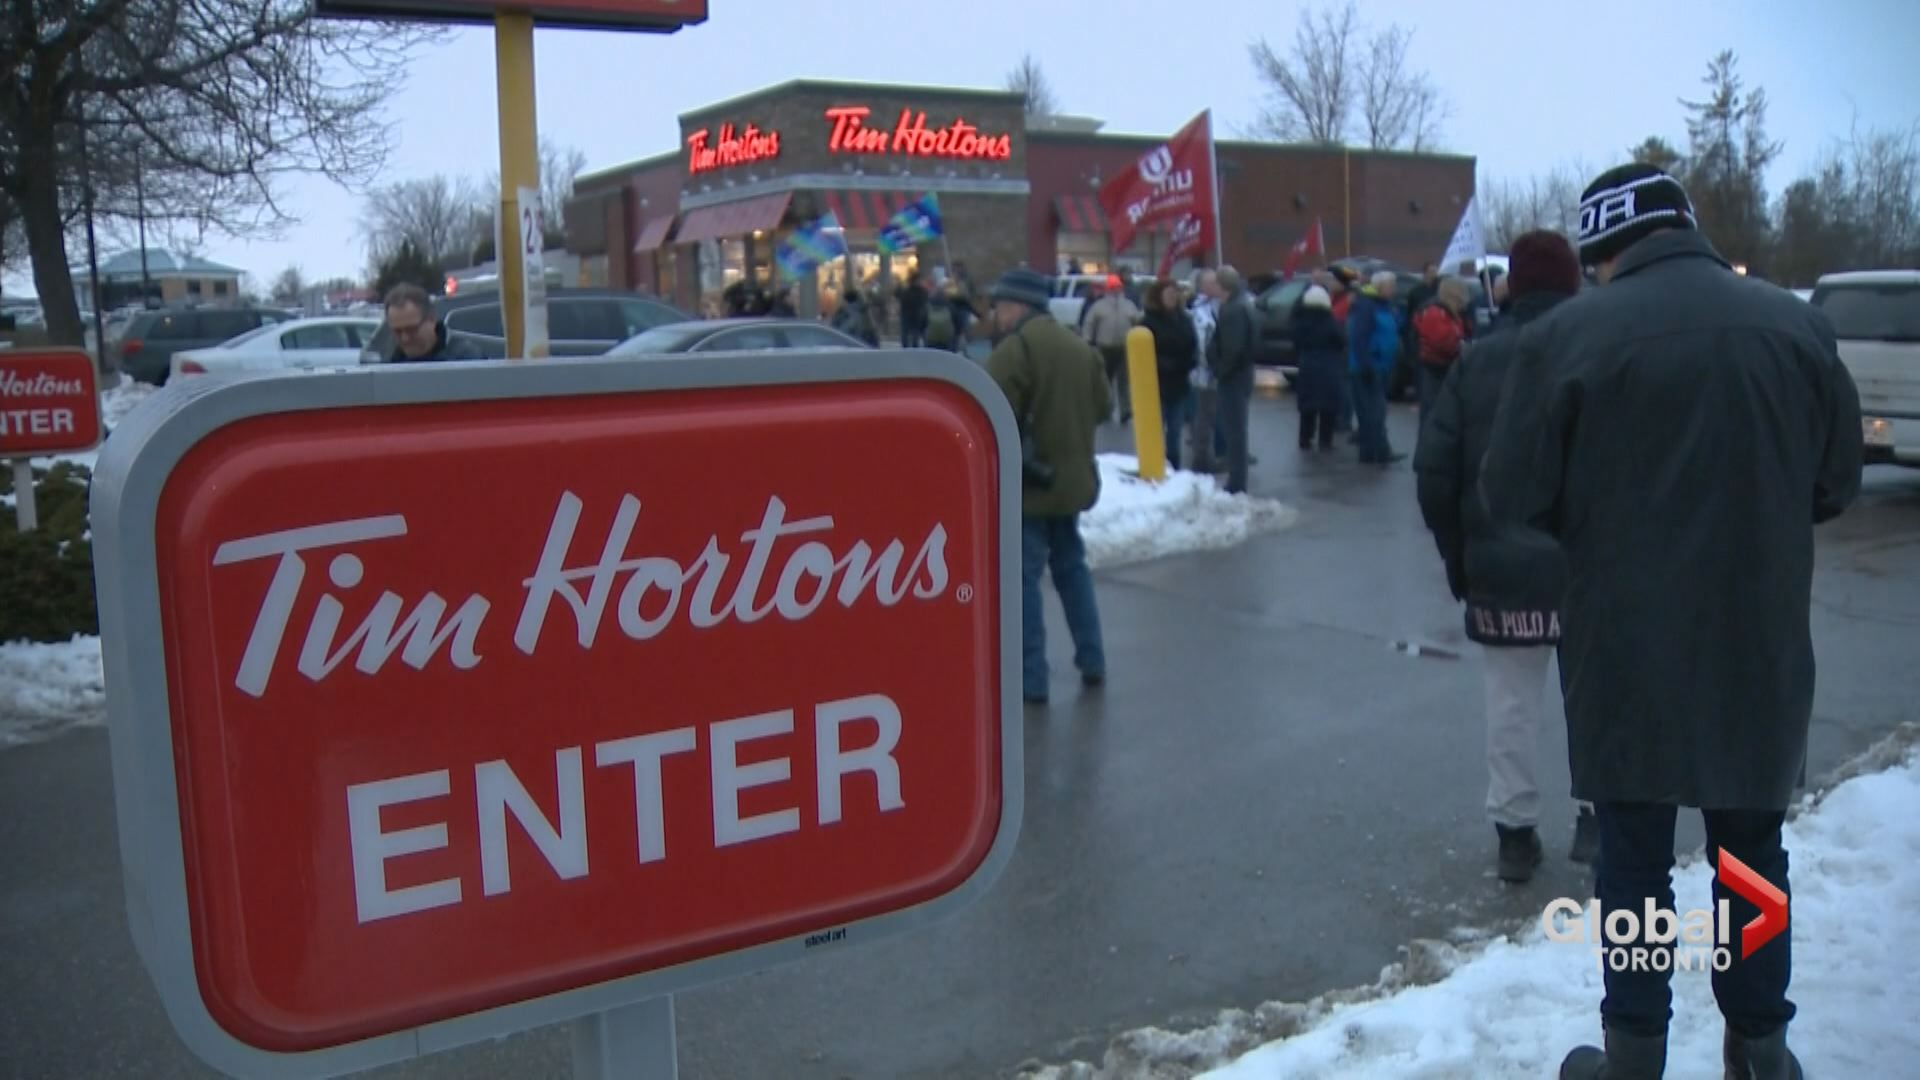 Labour council to hold information picket at Tim Hortons